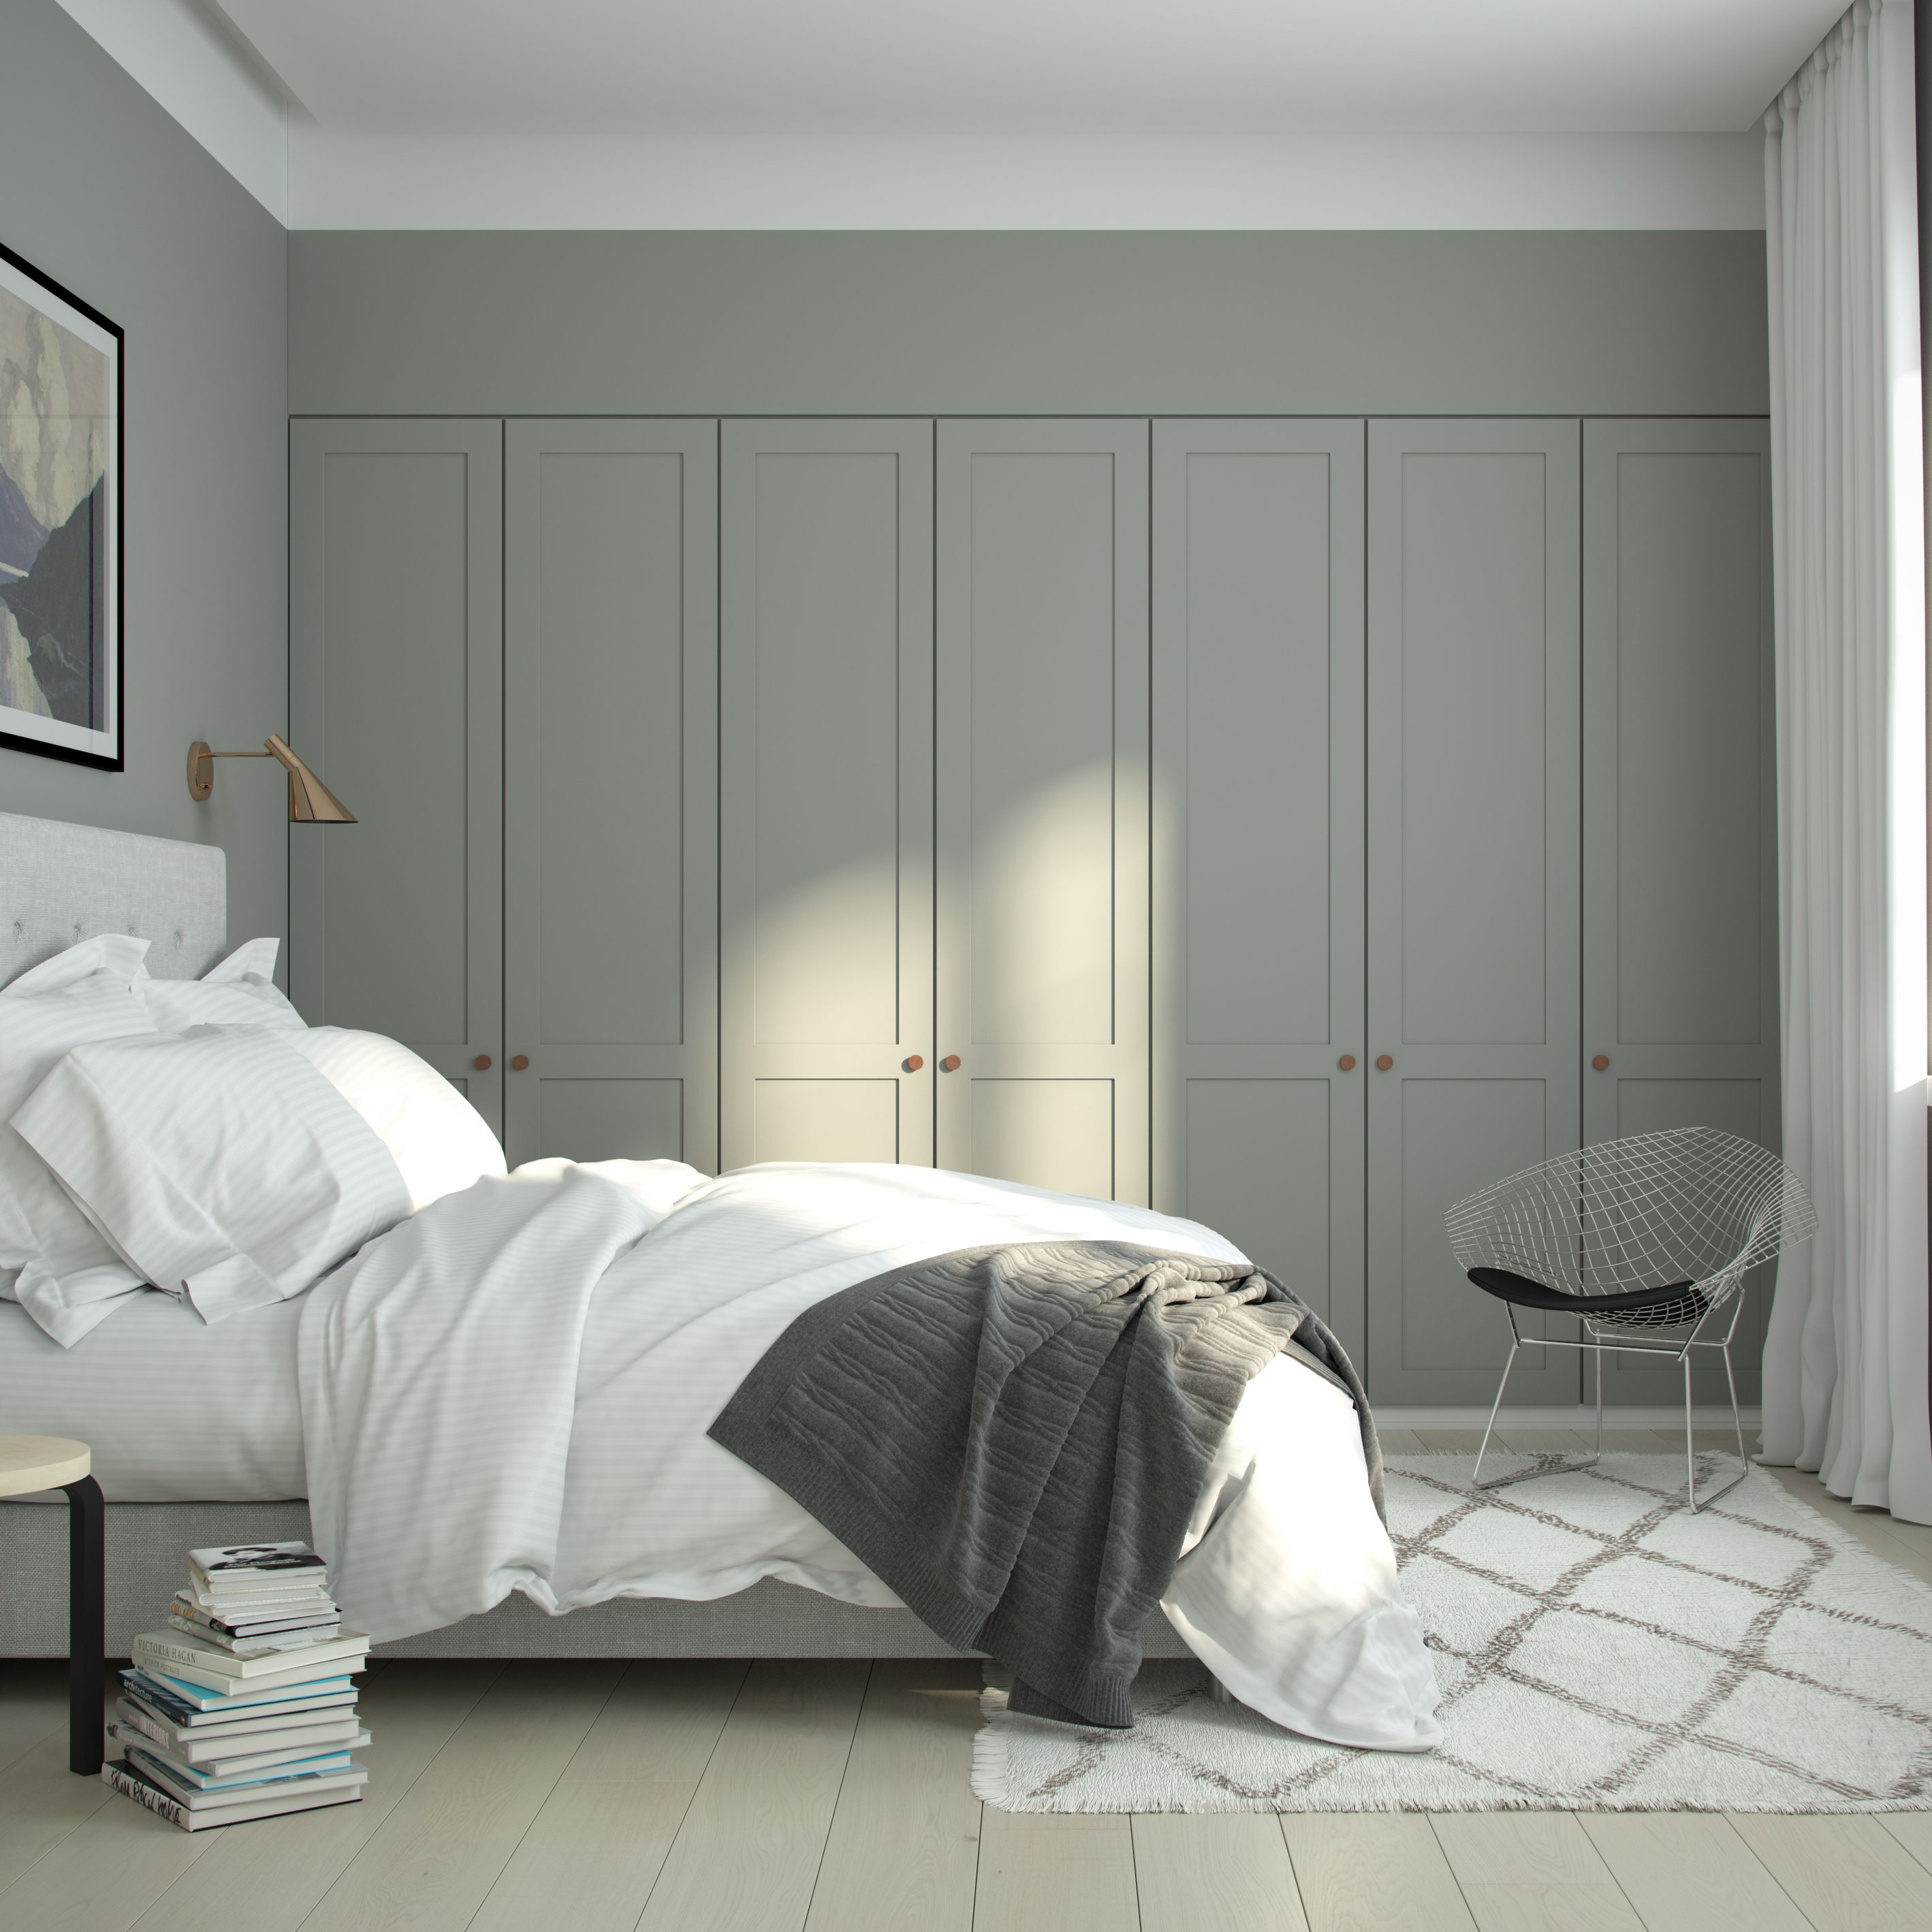 cozy bedroom. Cozy Bedroom With A.S.Helsingö Wardrobe. ENSIÖ Wardrobe Doors On IKEA PAX Cabinet Frames. D